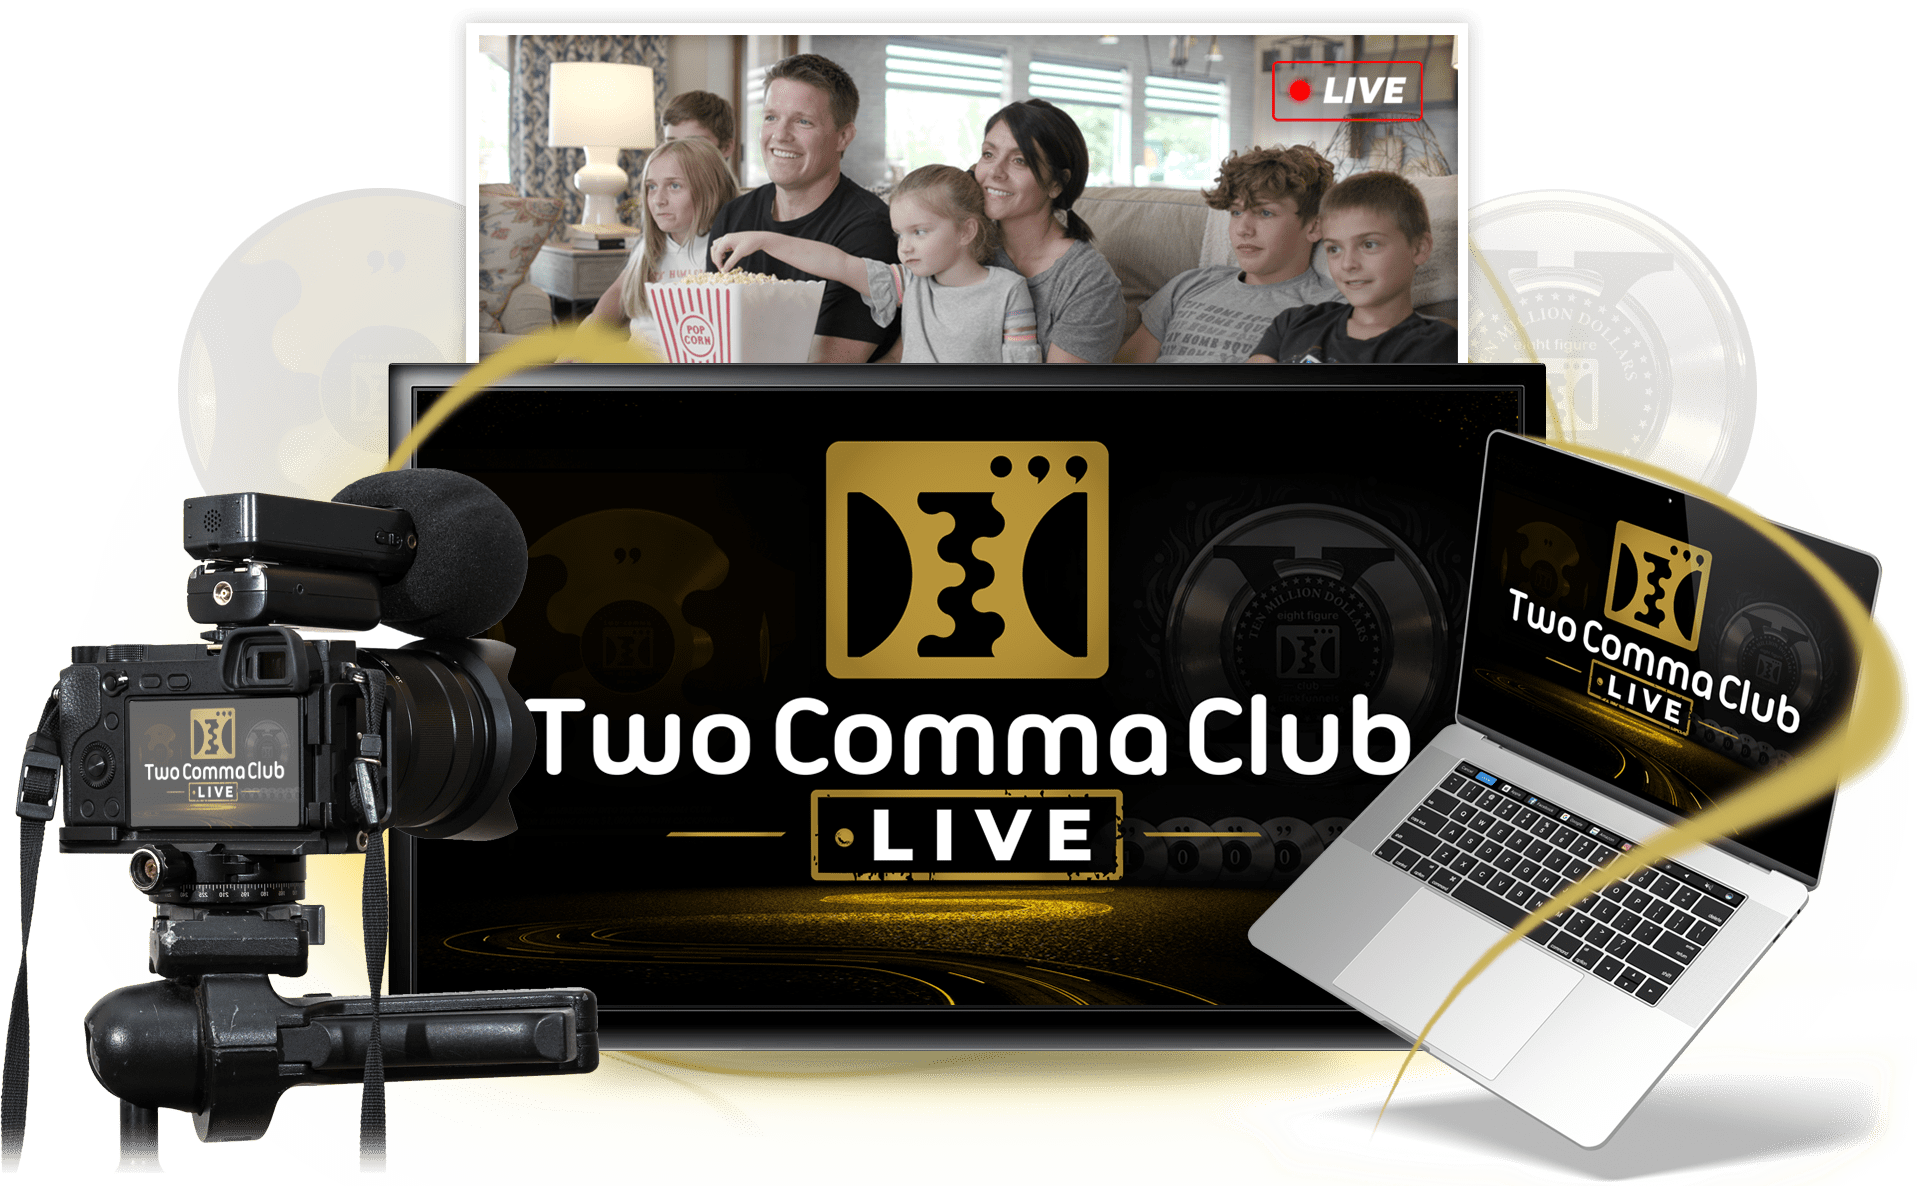 two comma club live scam or legit? read this review